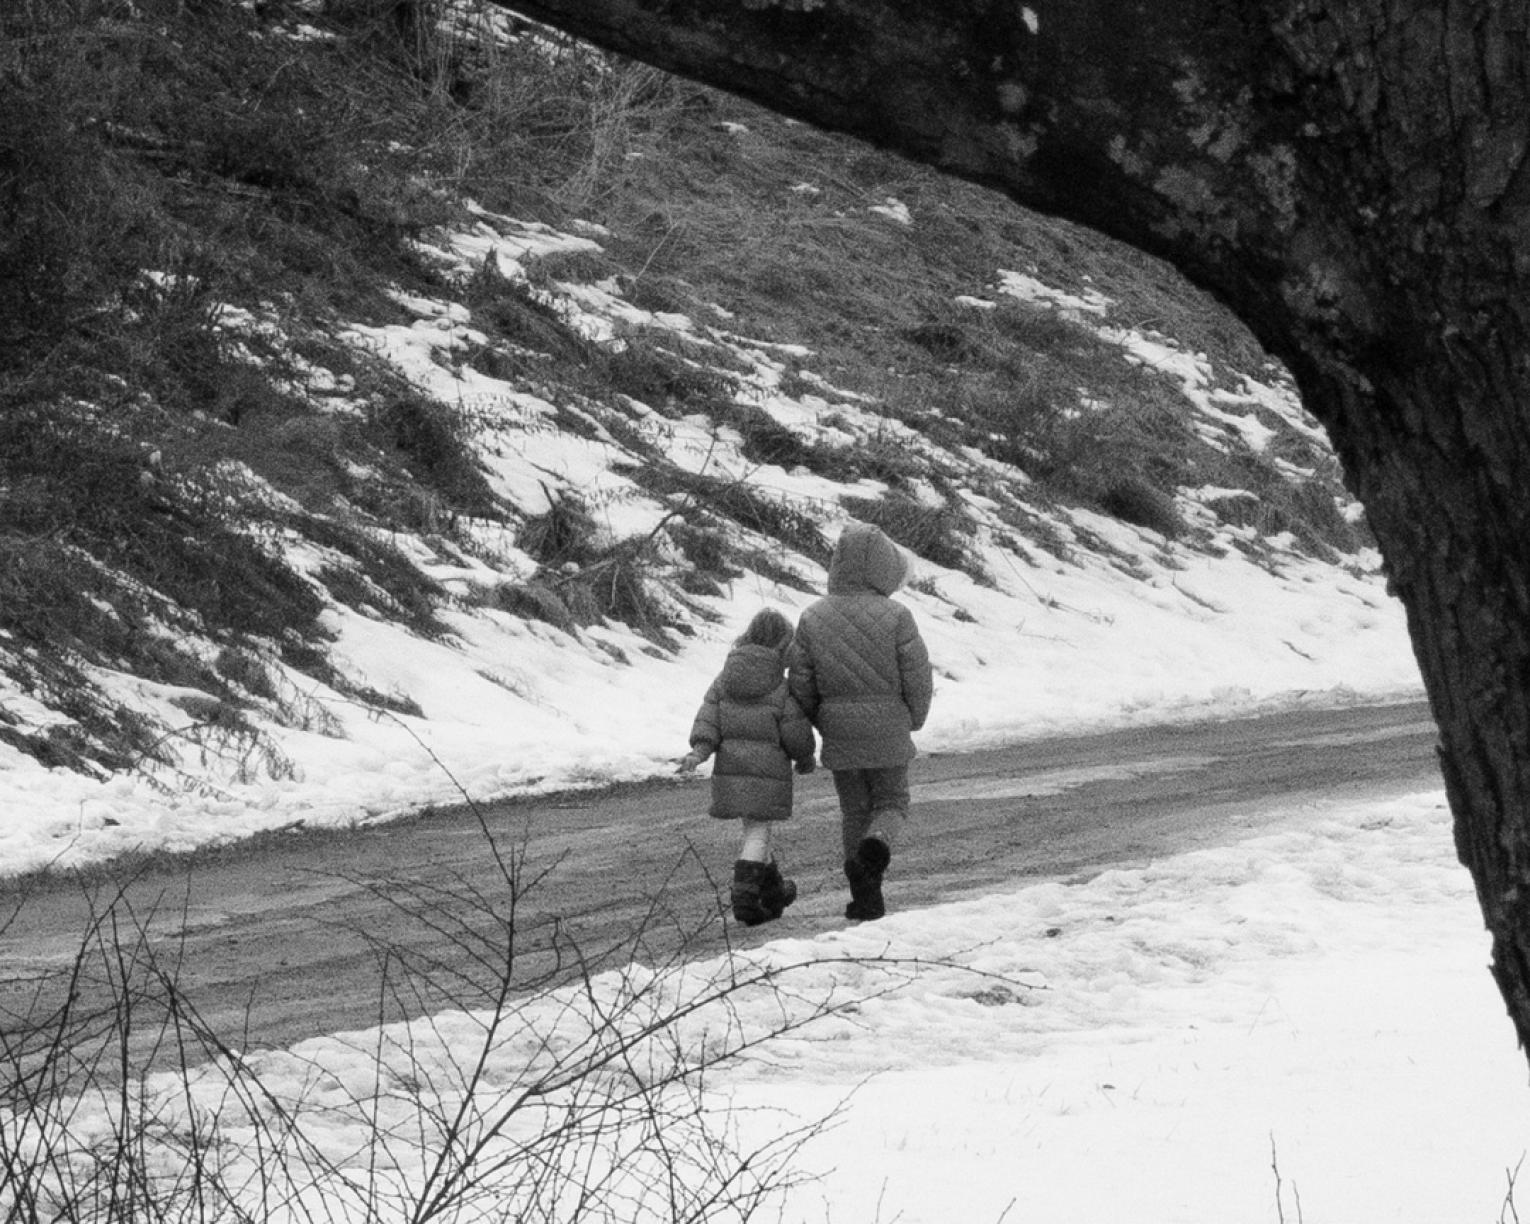 Black and white photograph of two girls walking on snowy gravel road